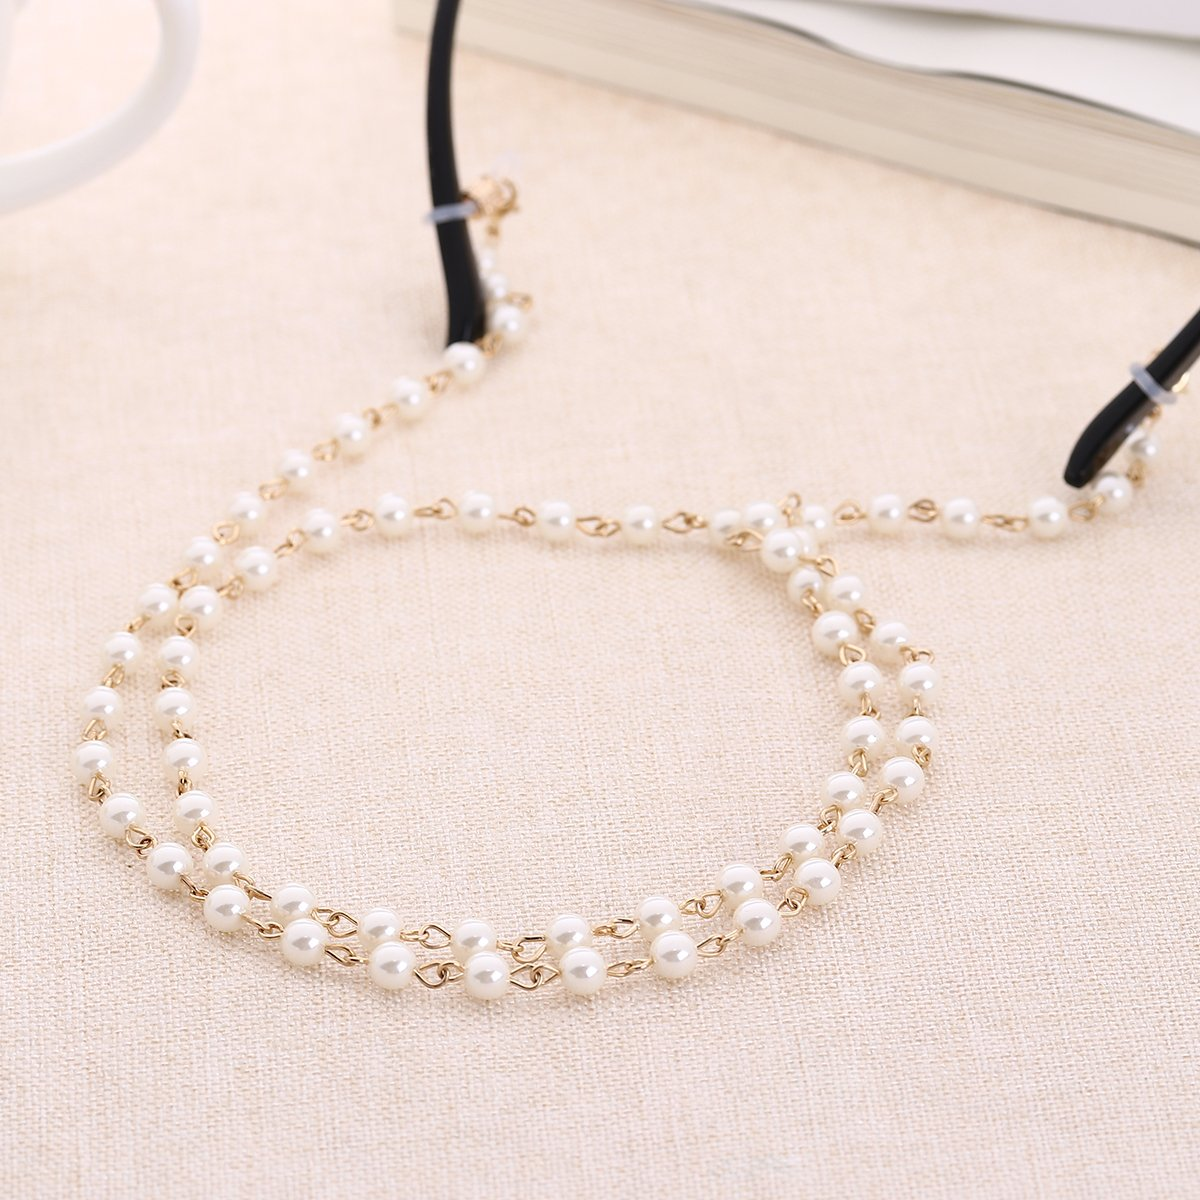 Tinksky Pearls Bead Eyeglass Chain Strap Sunglass Holder Lanyard Necklace Spectacles Holder Sunglasses Neck Cord Strap